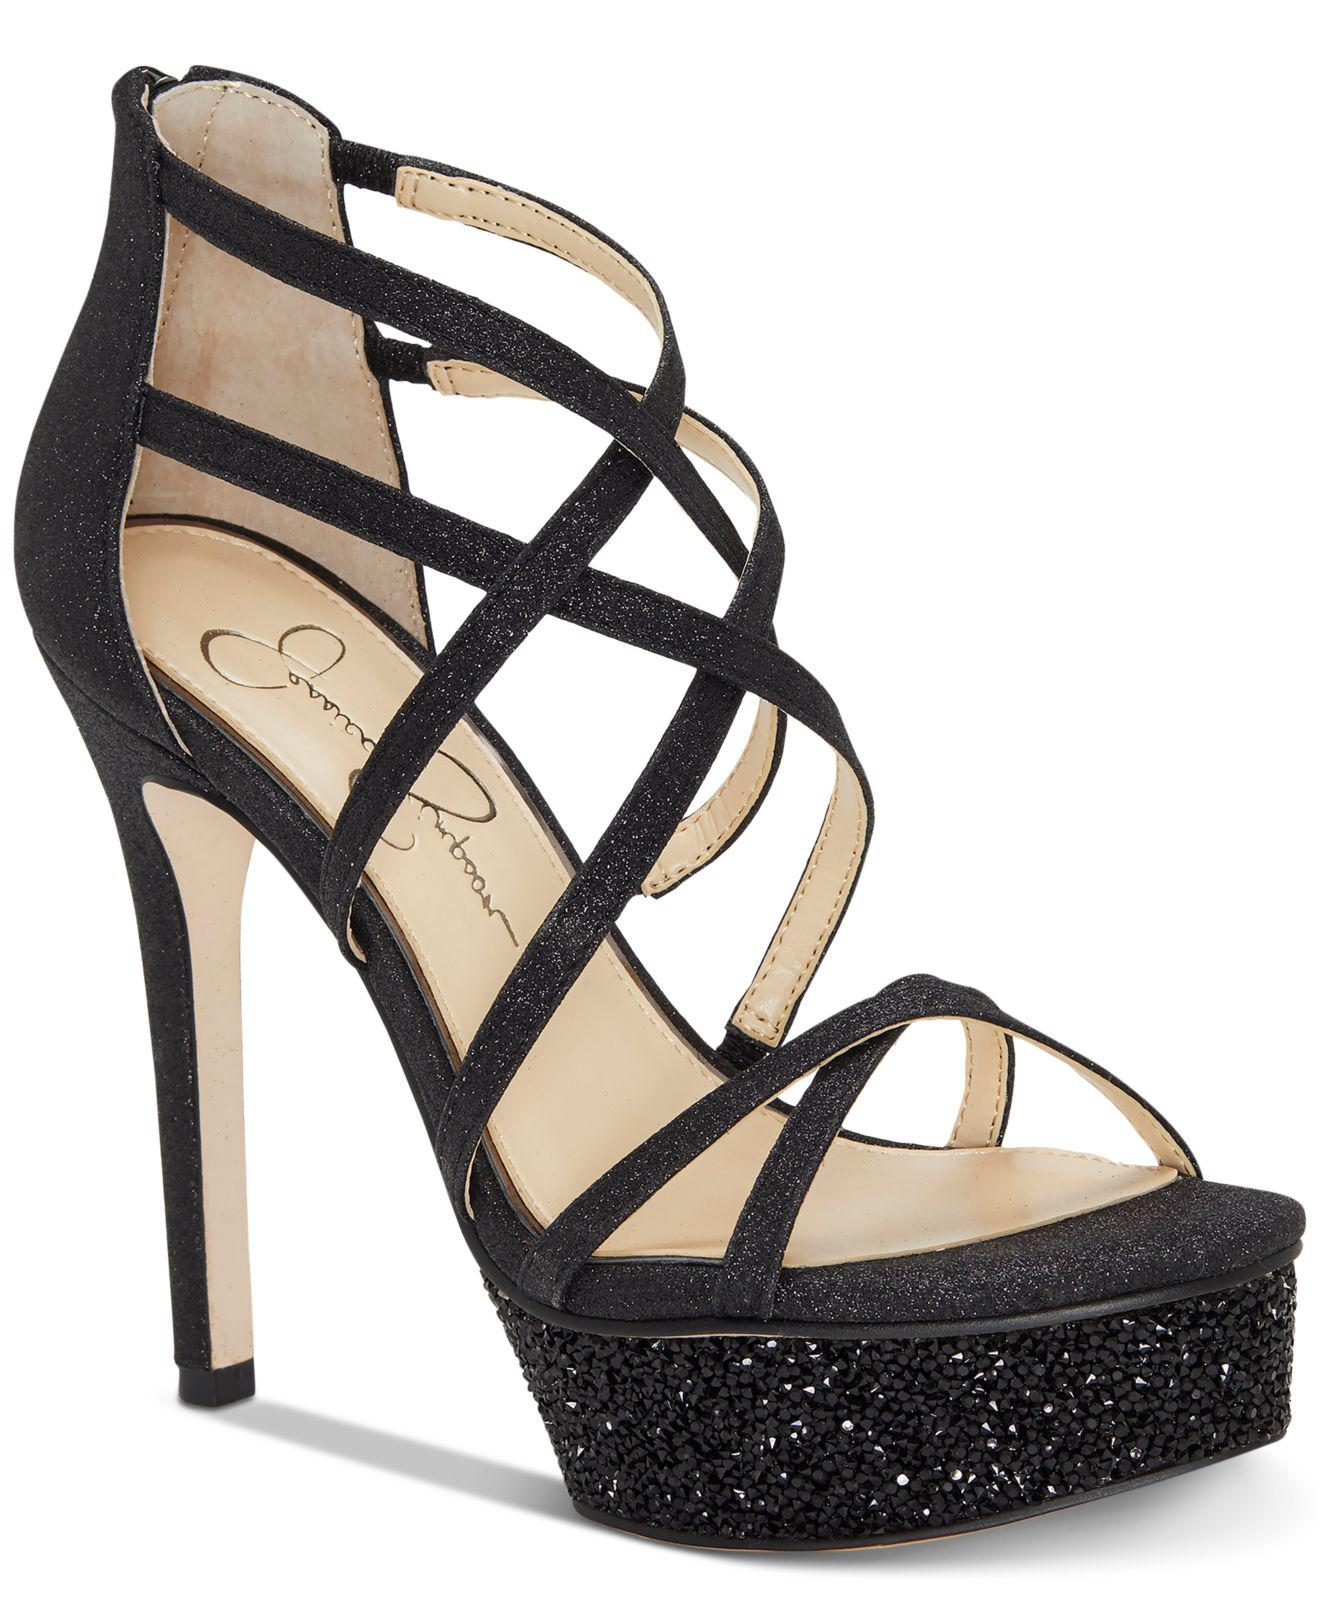 9ec930e1966 Lyst - Jessica Simpson Araya Dress Sandals in Black - Save 40%